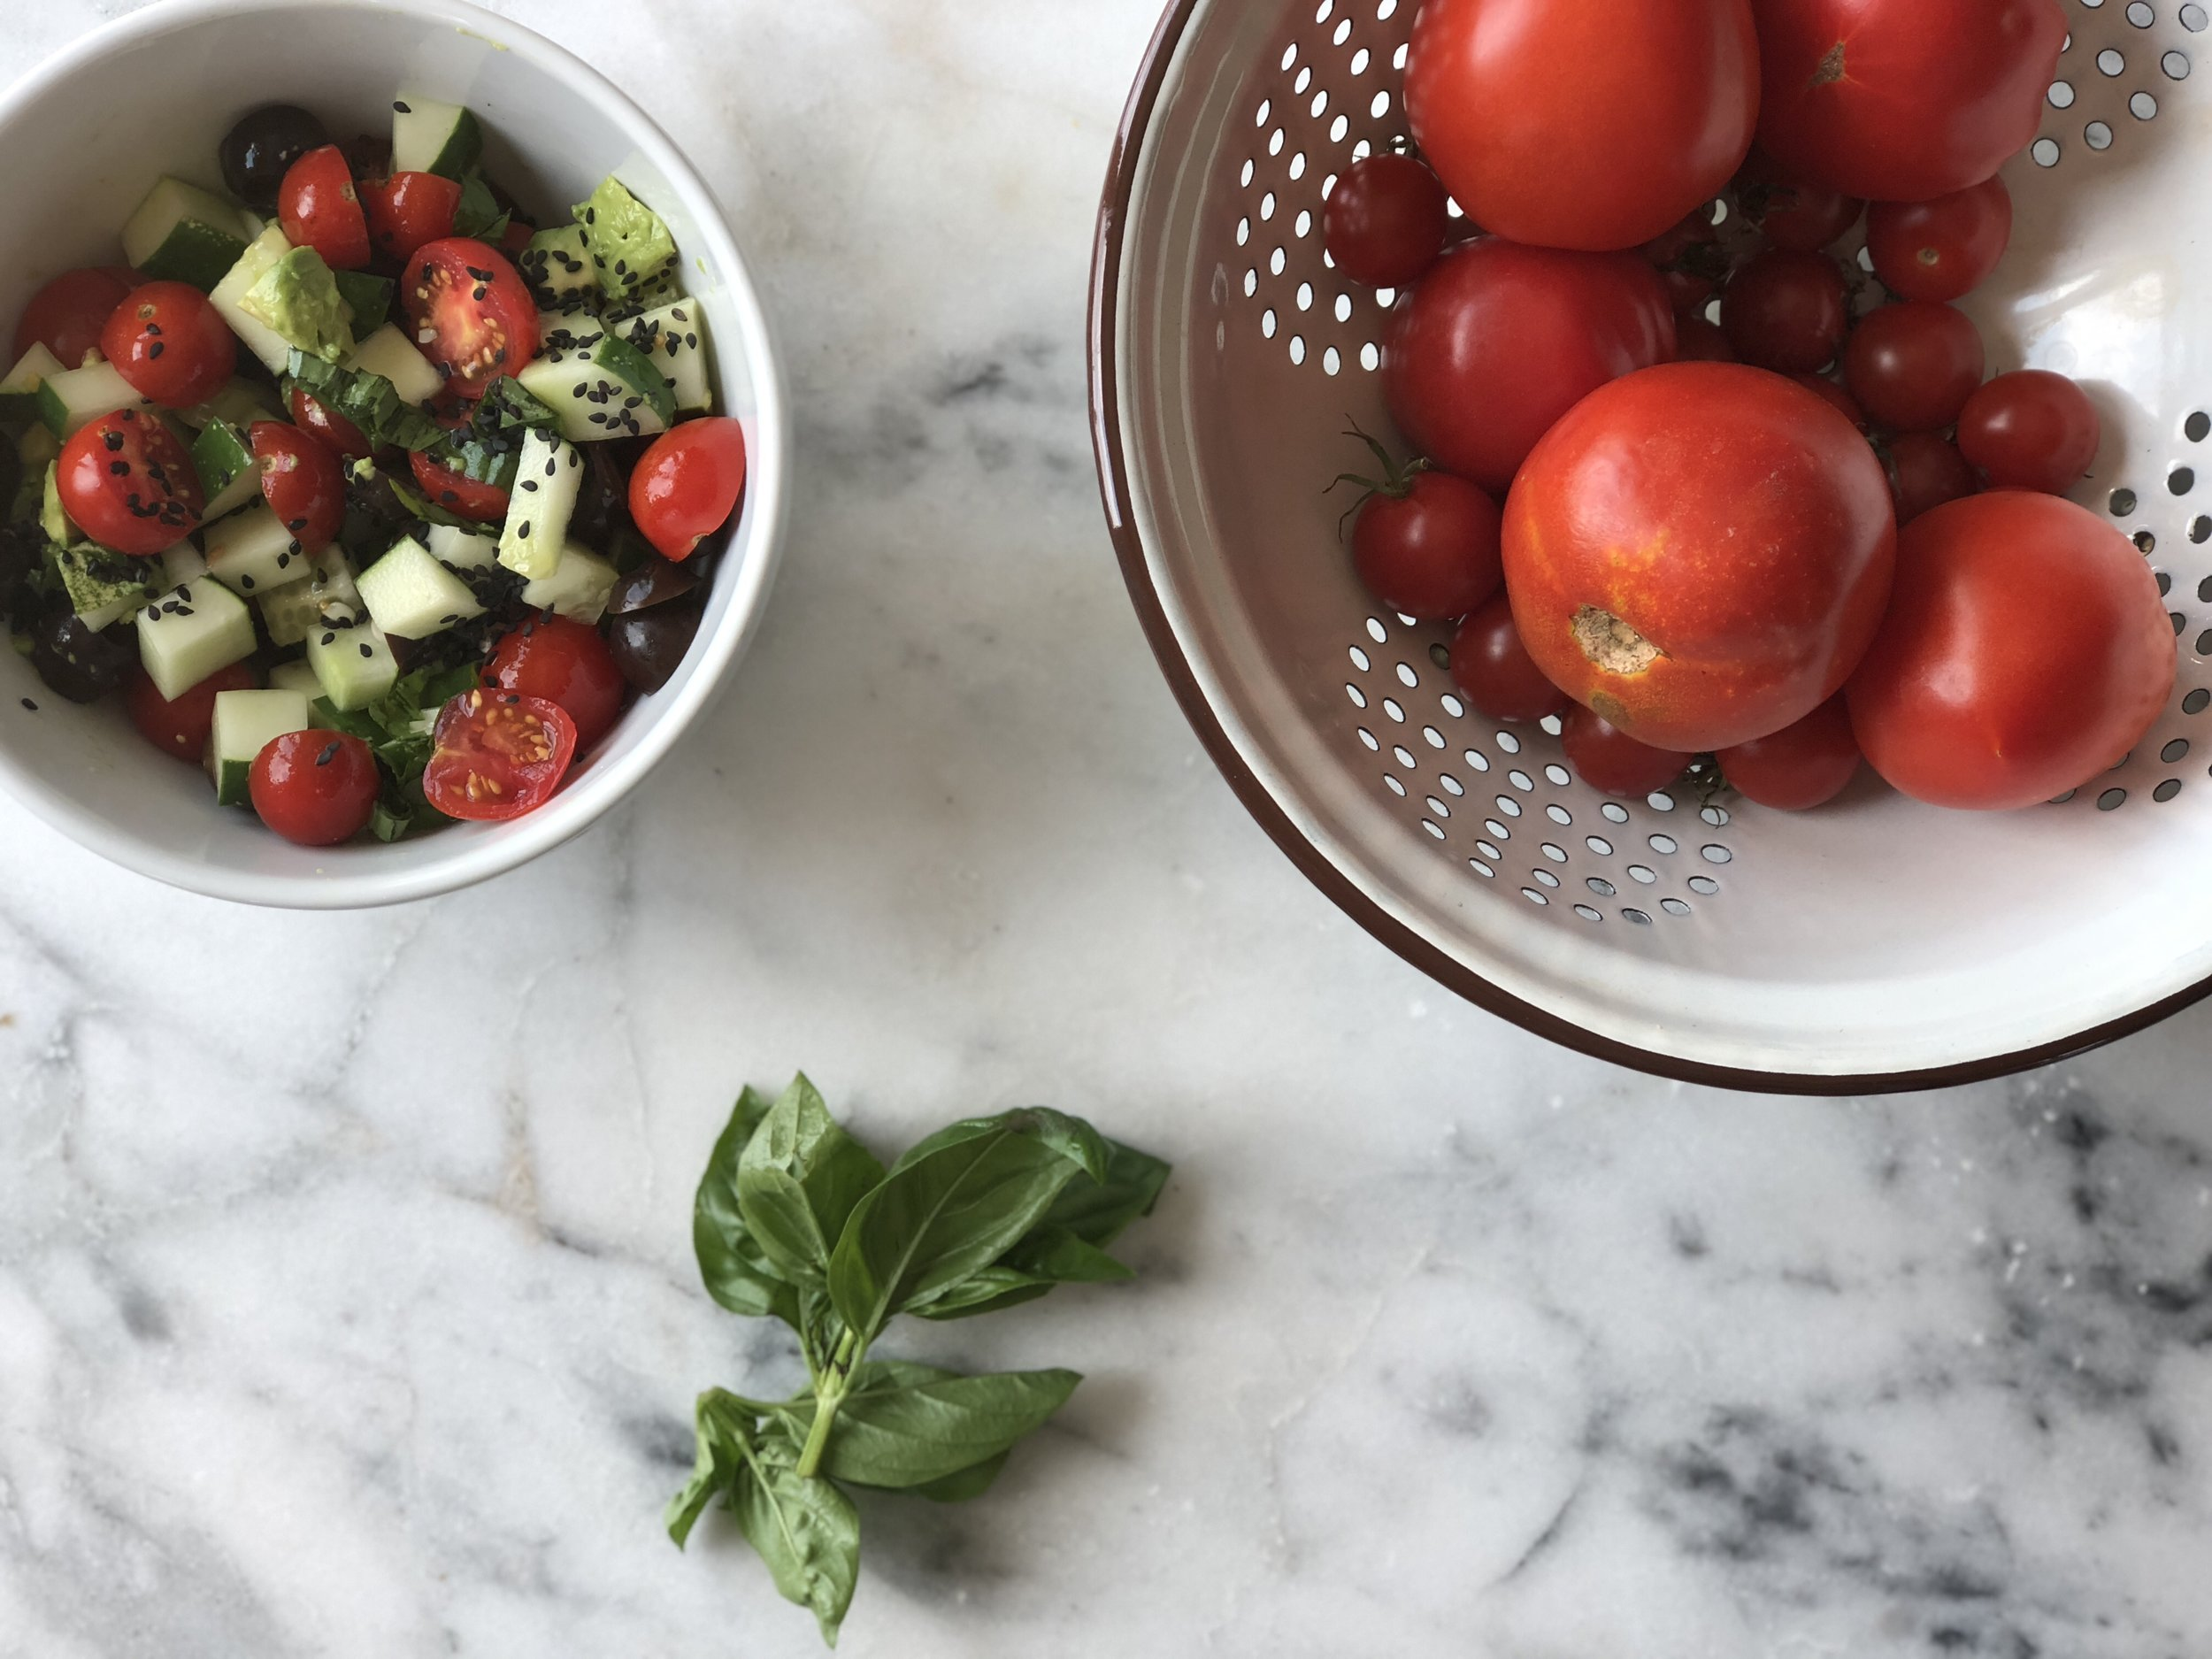 tomato basil salad and tomatoes.jpg